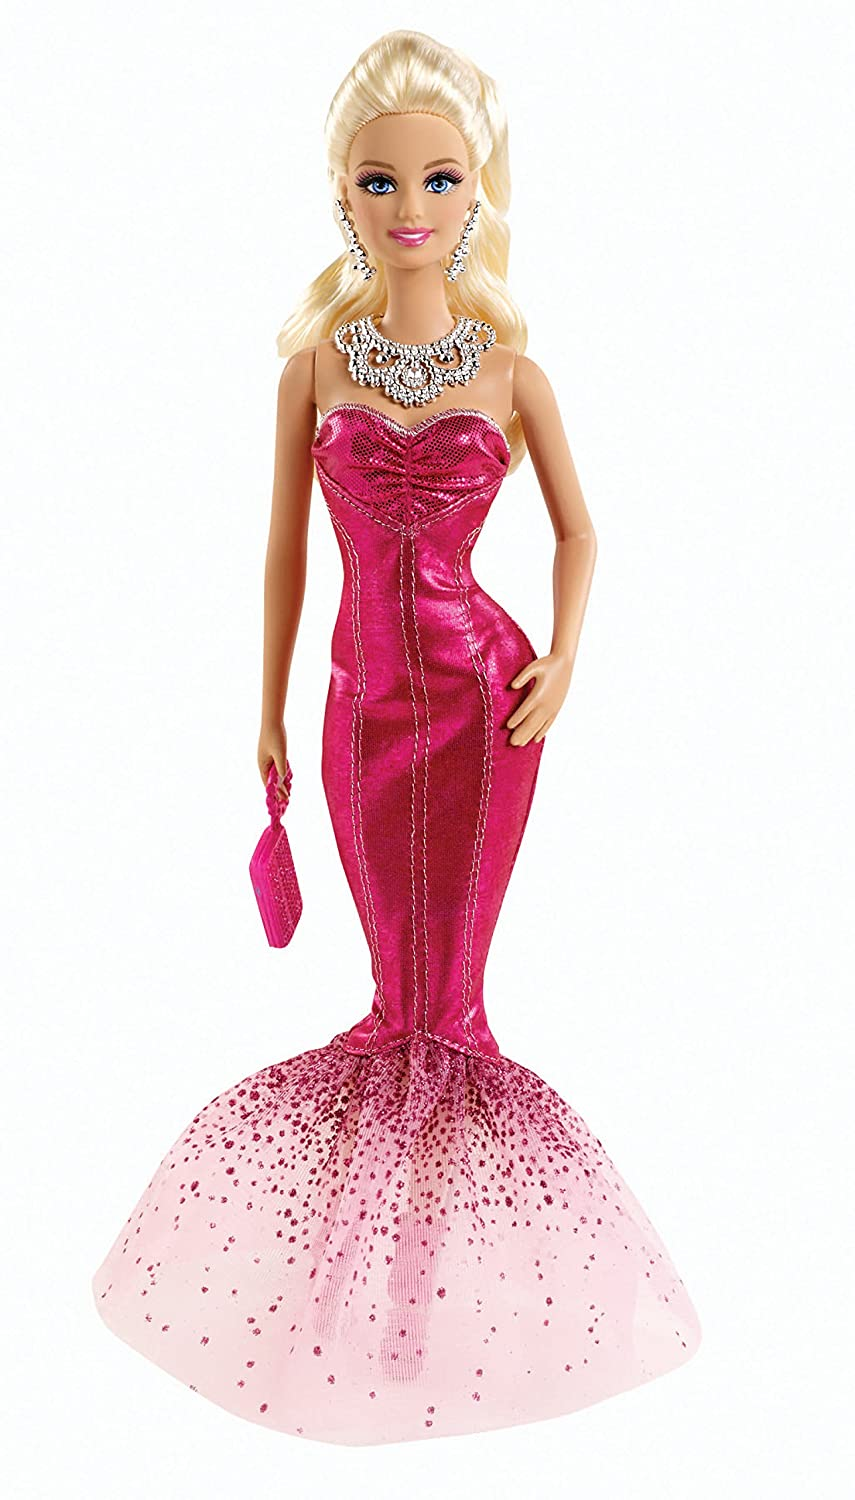 Amazon.com: Barbie Mermaid Gown Doll: Toys & Games